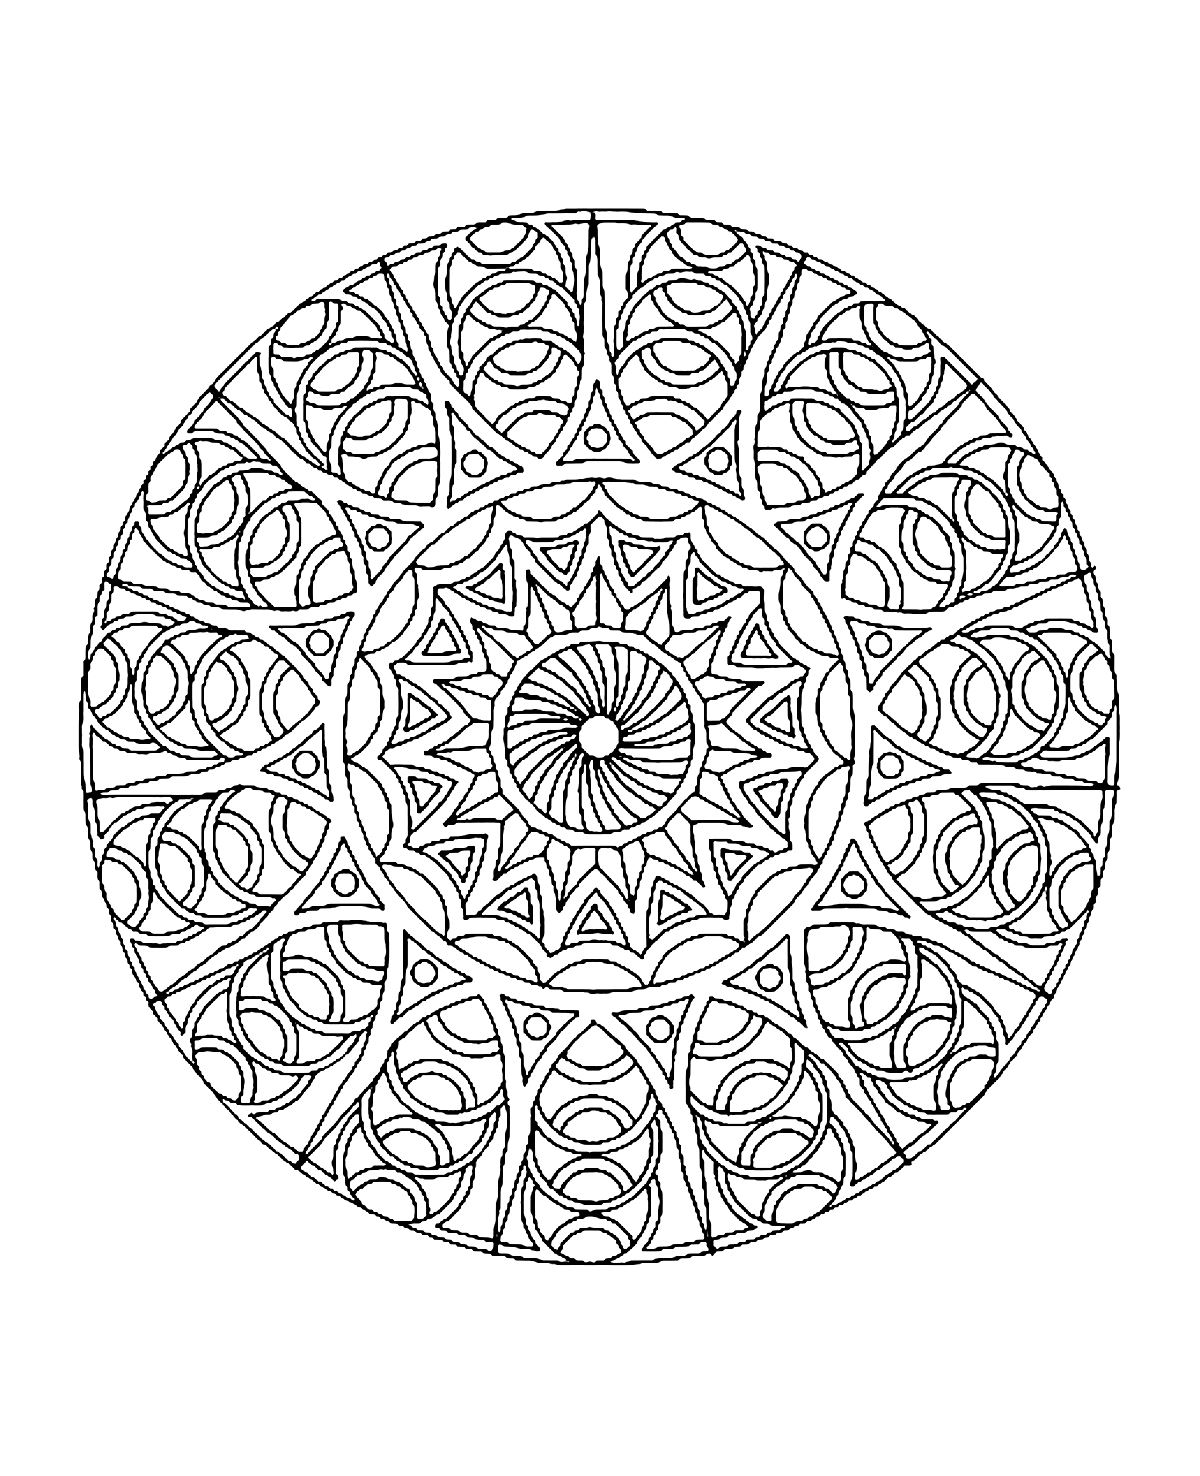 Mandala To Color Difficult 4 From The Gallery